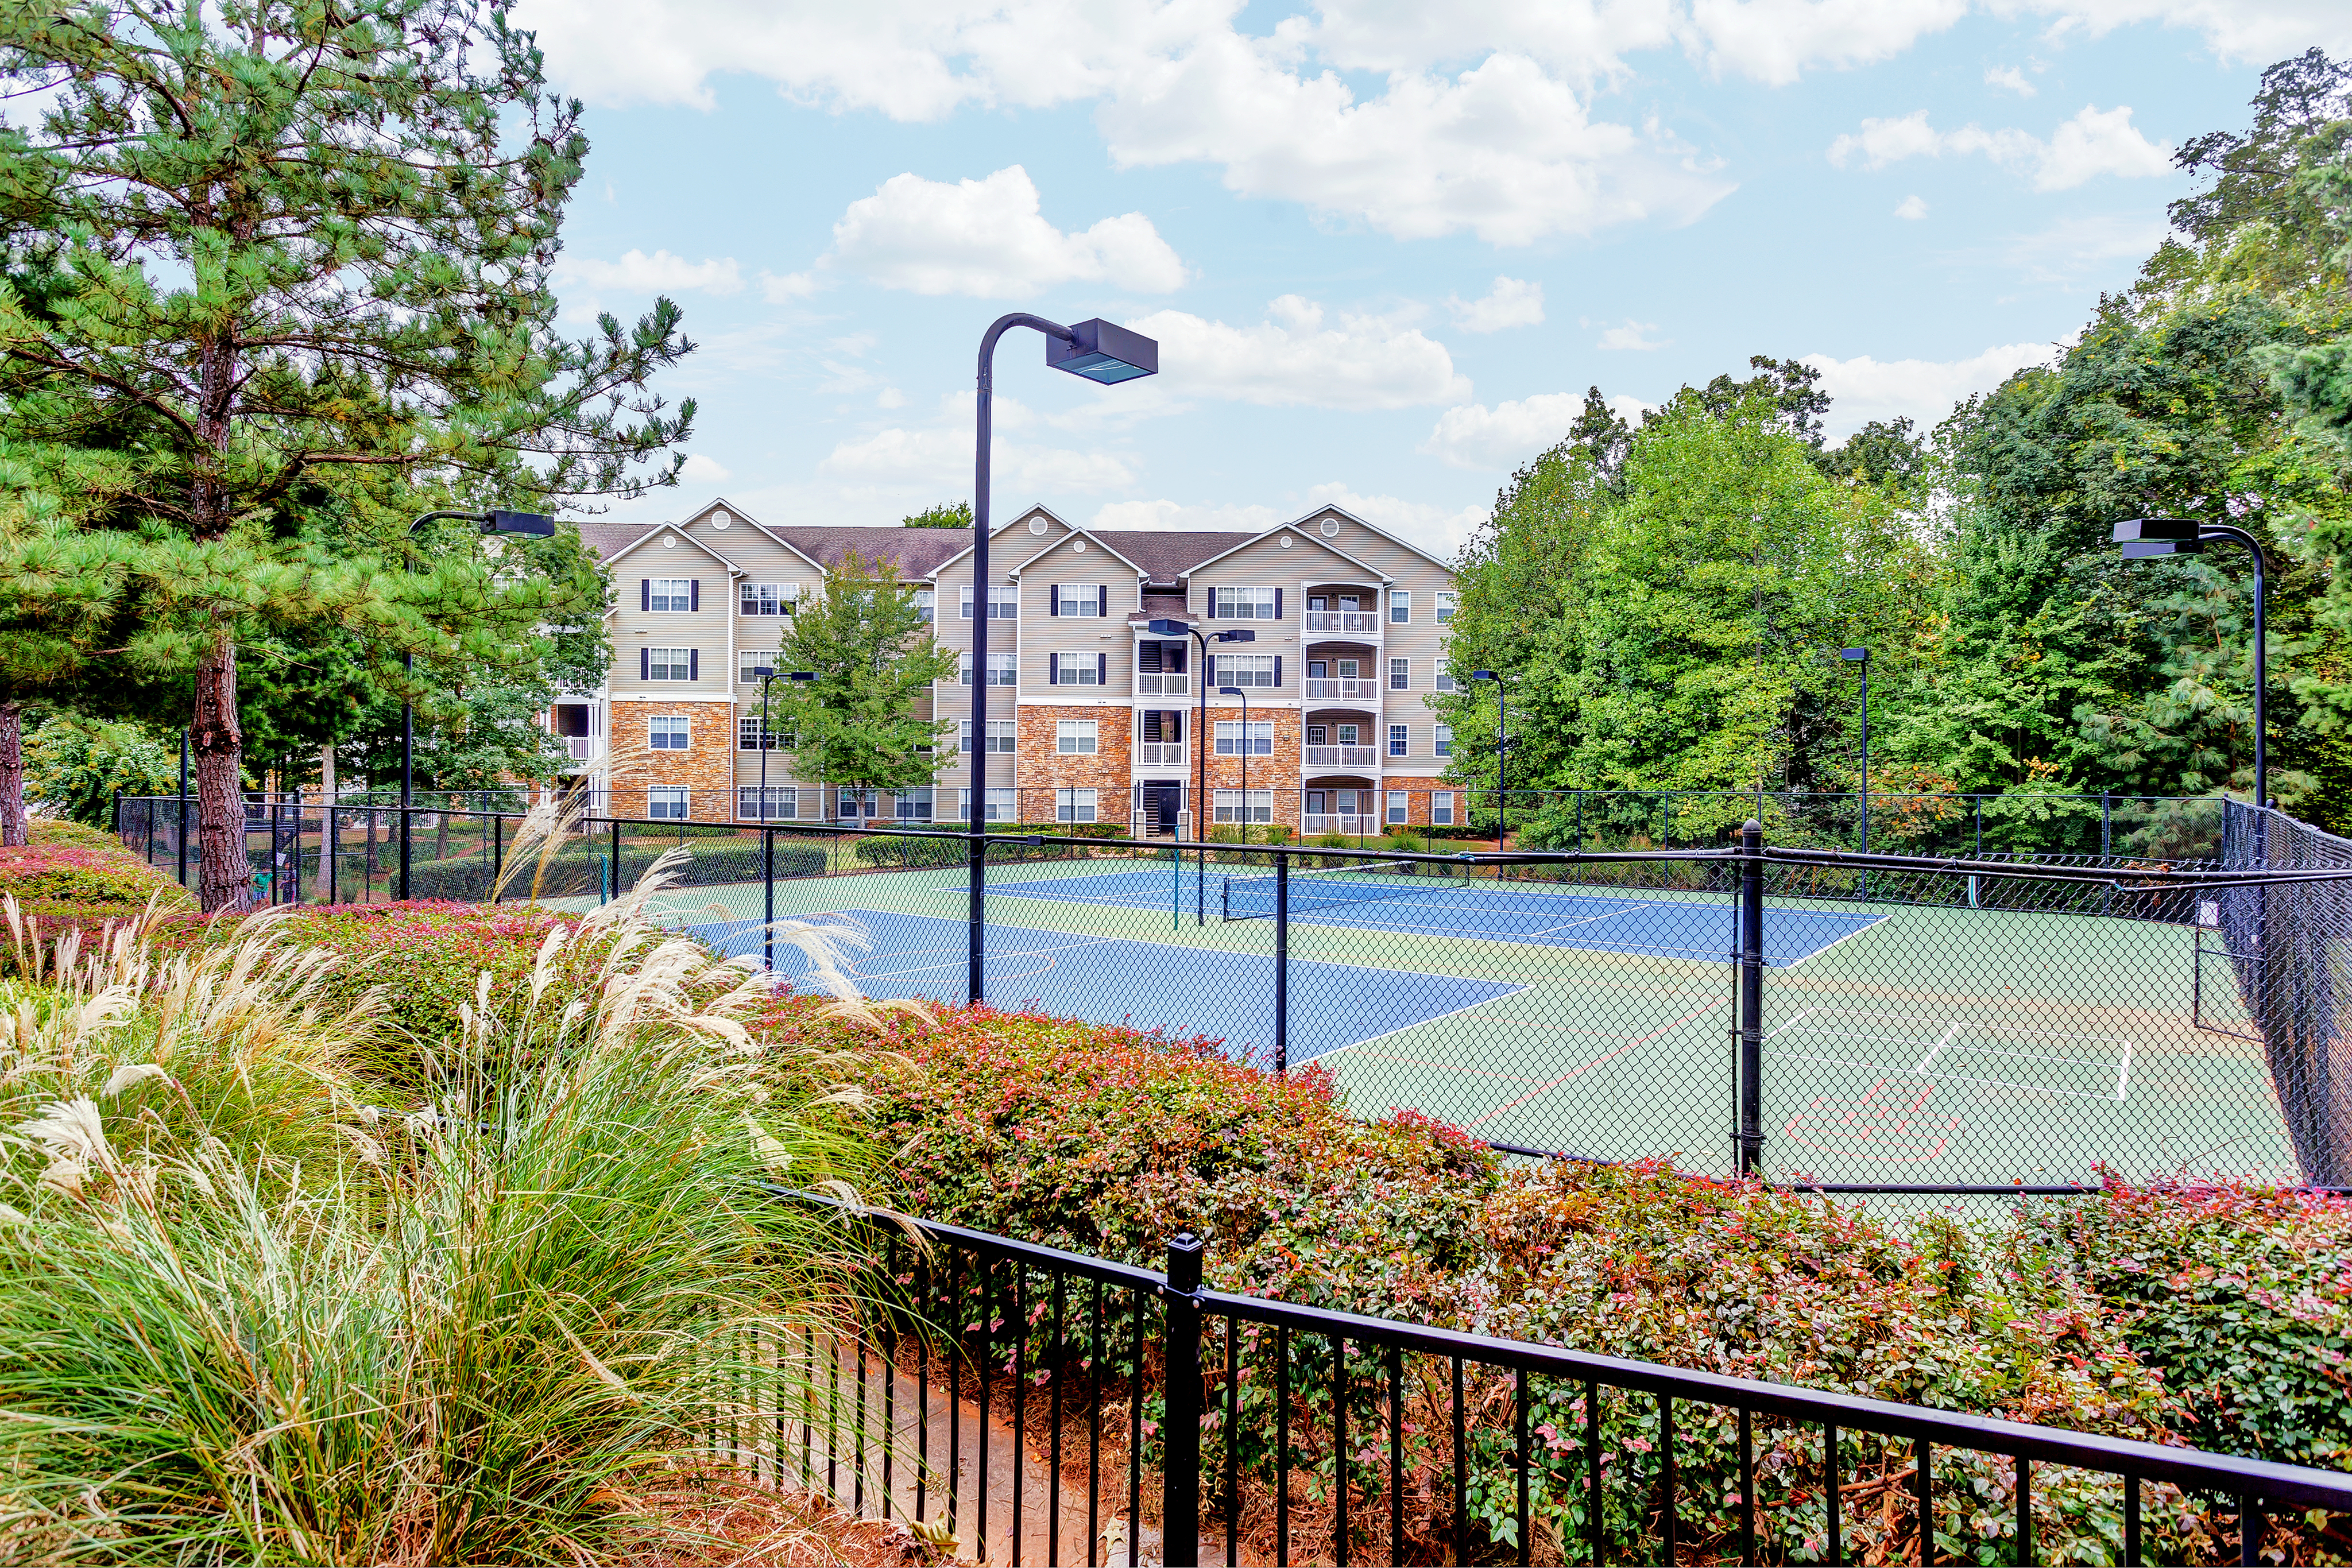 View of Tennis Court, Showing Fenced-In Area and Landscaping at Summer Park Apartments